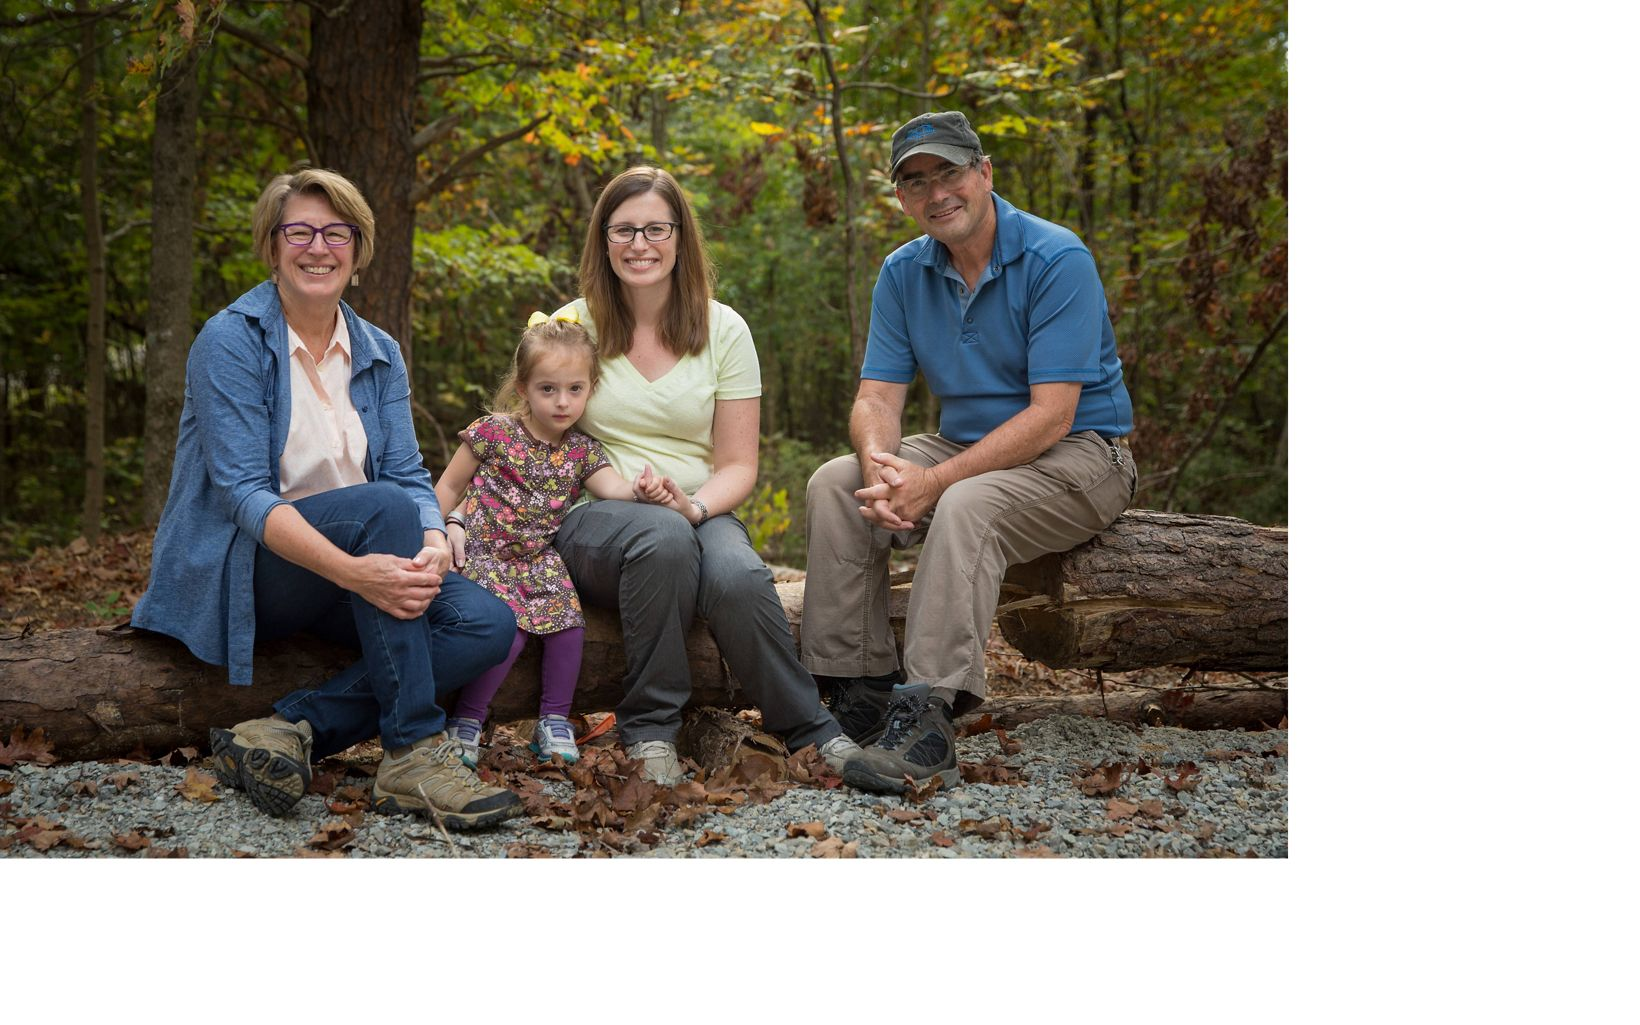 Three adults and a child pose on a log in the forest.